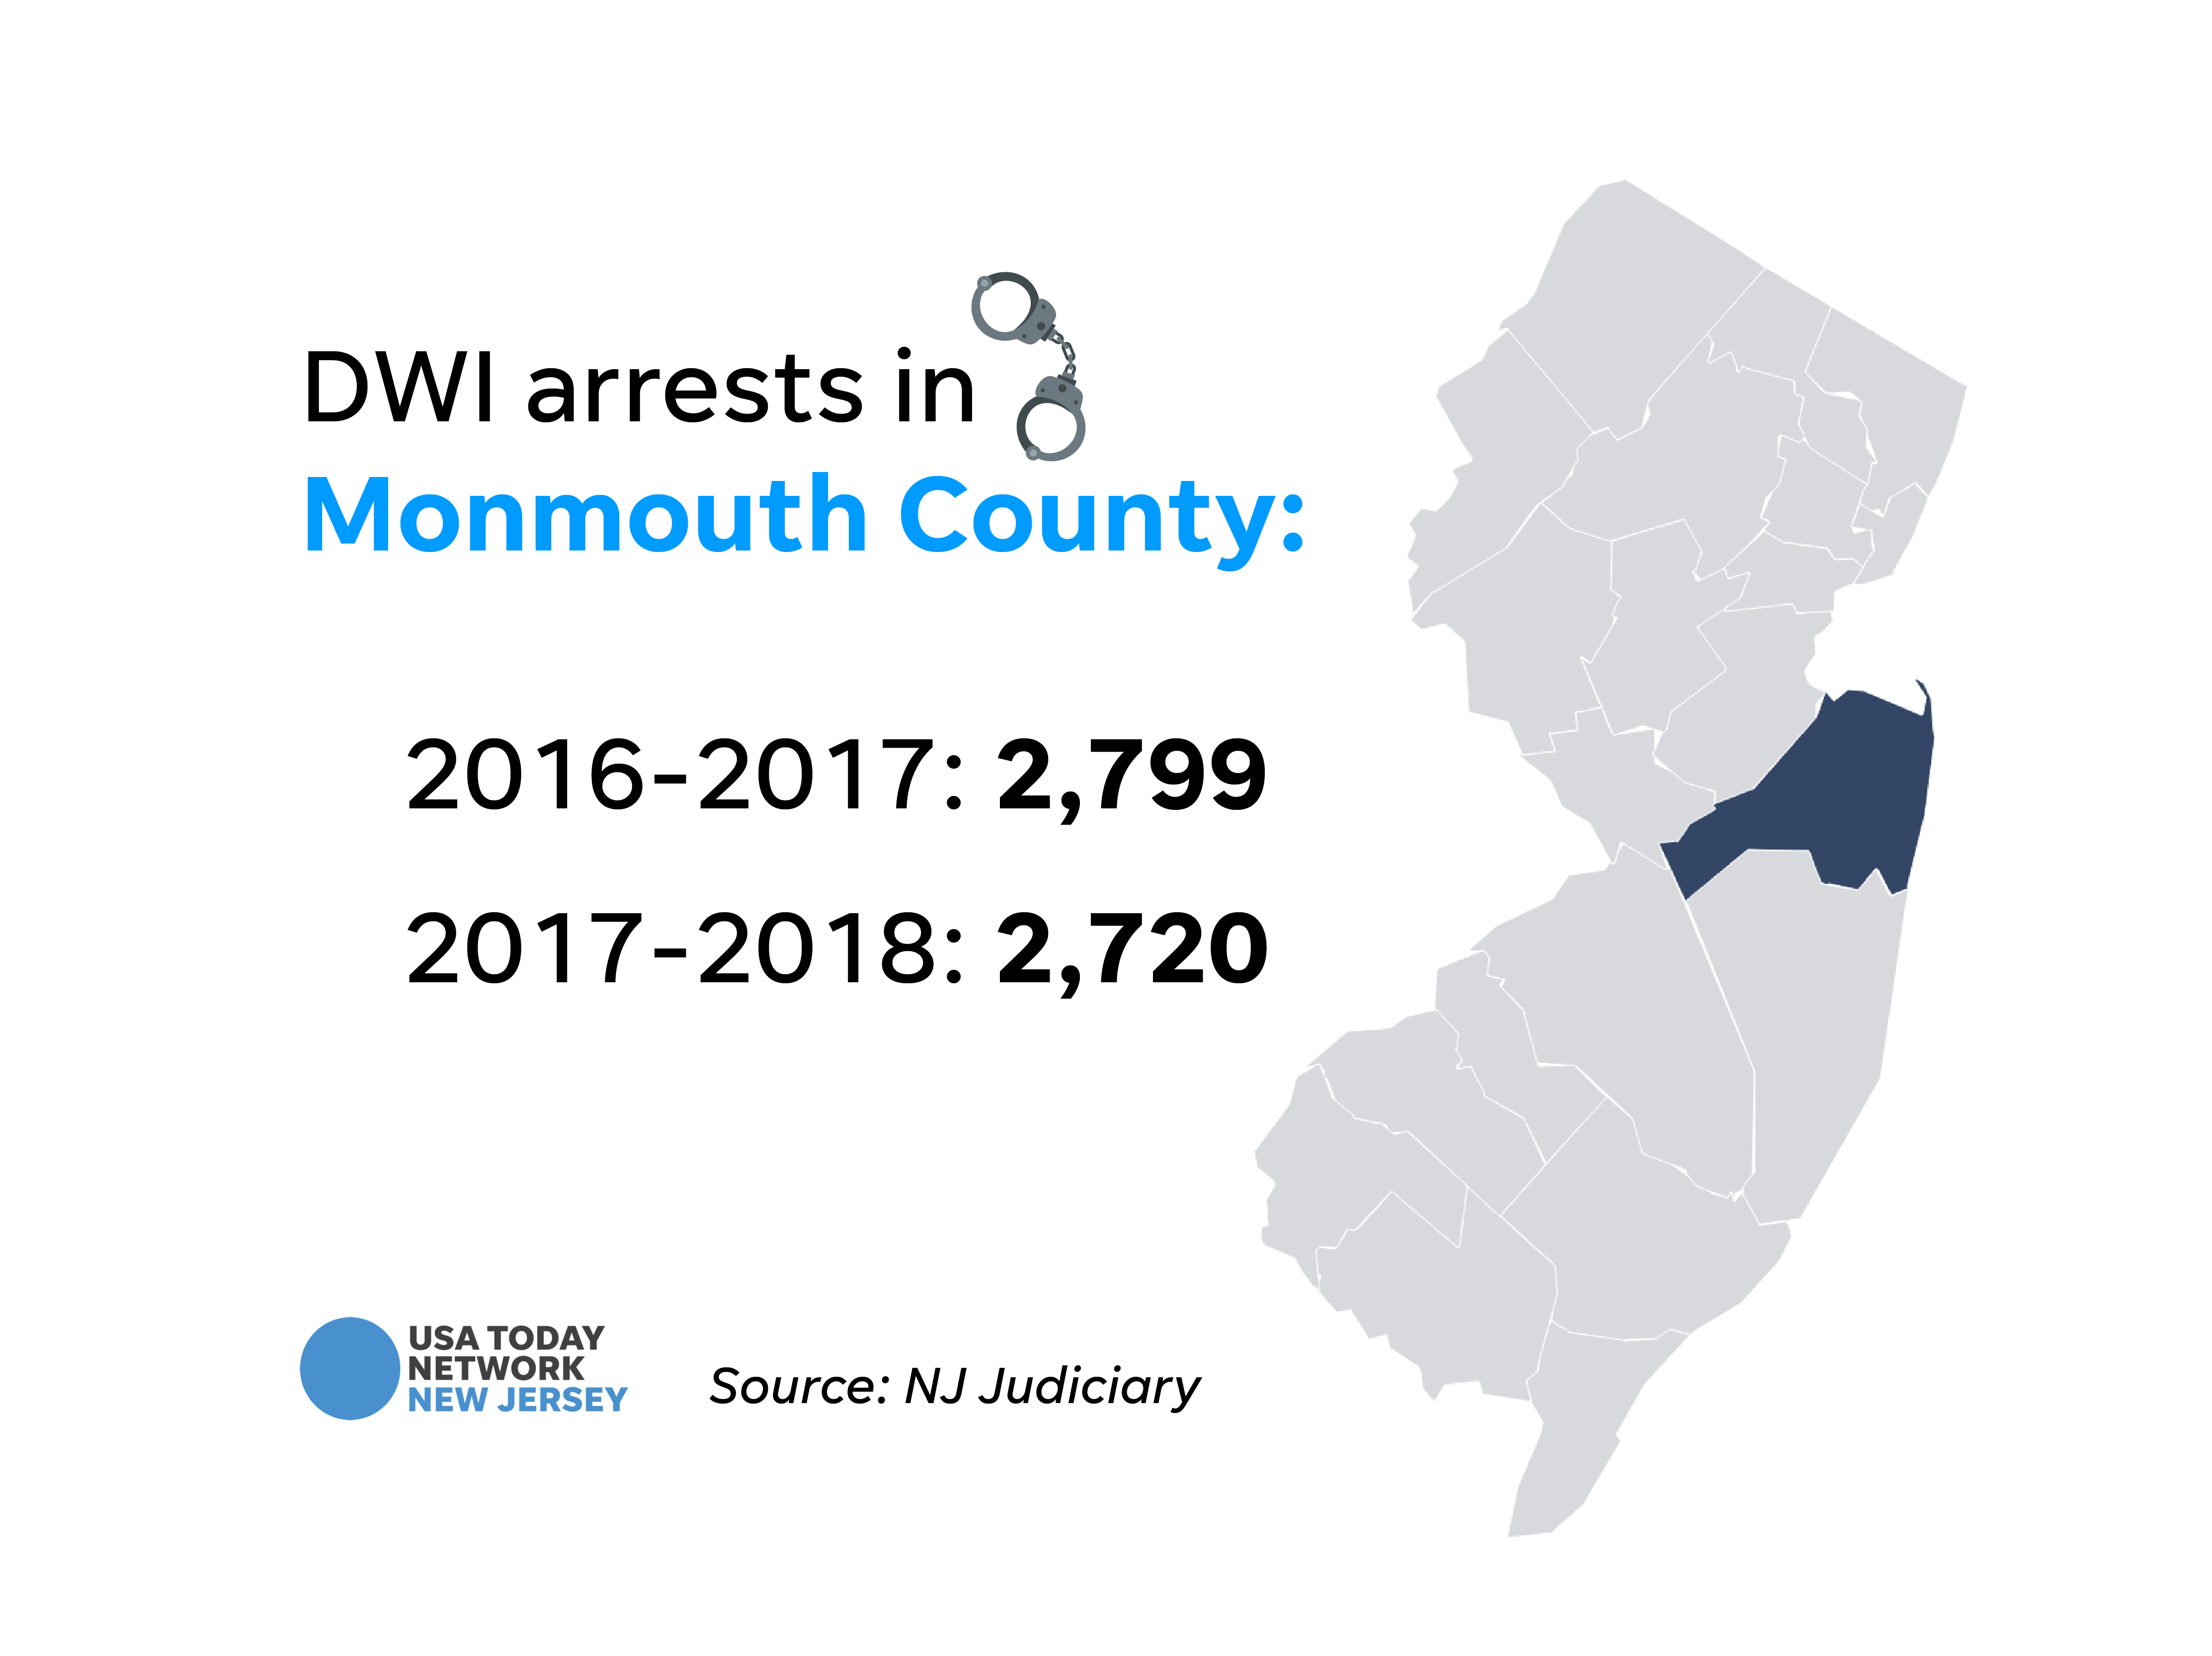 DWI arrests in Monmouth County.